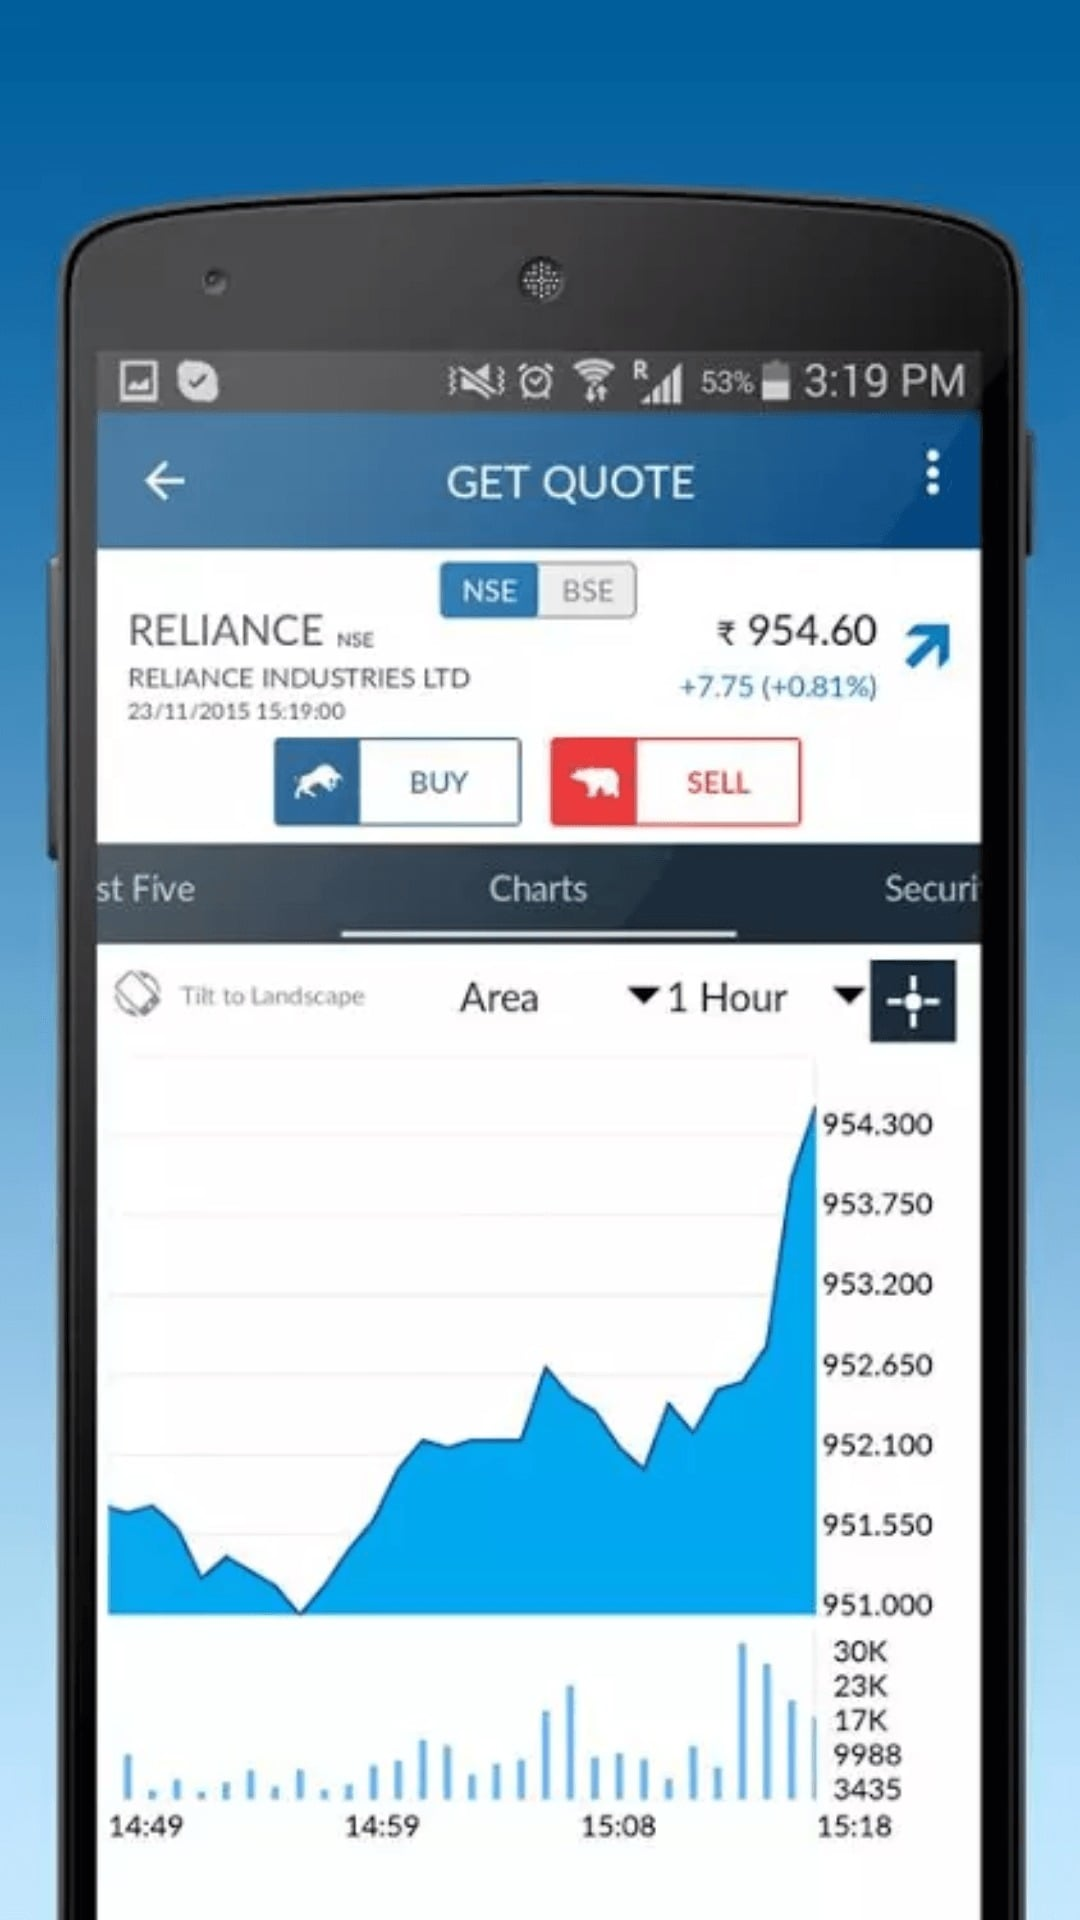 Angel Broking App Charts Section